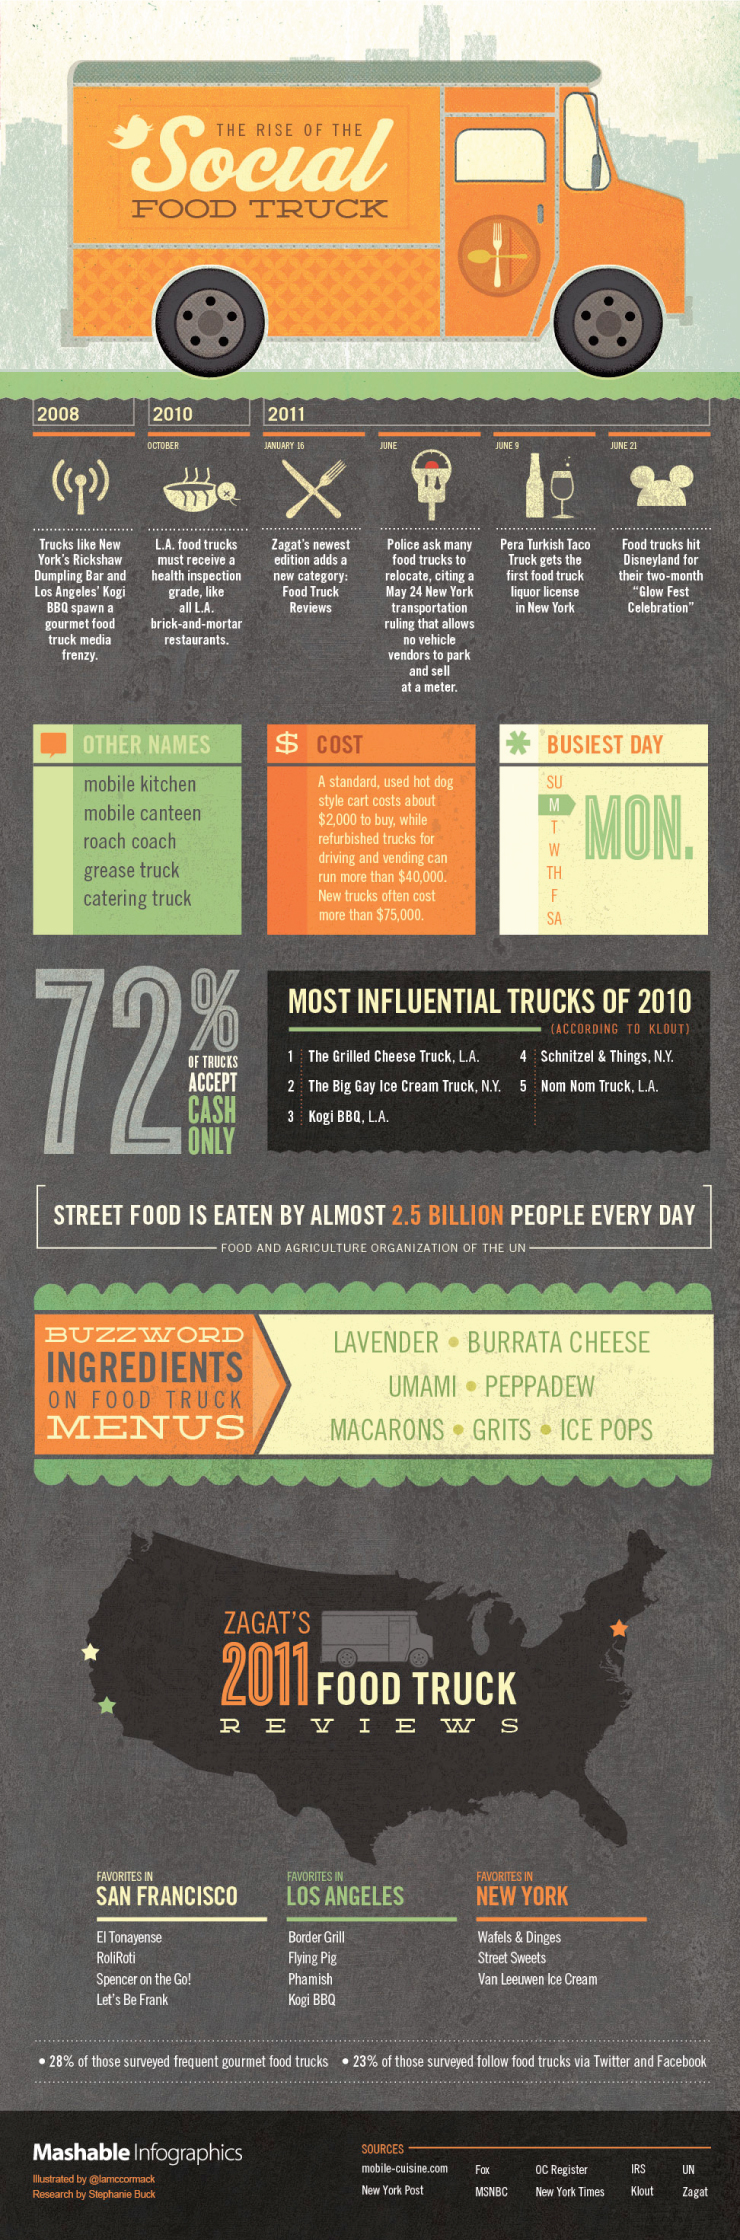 Food Trucks-Infographic